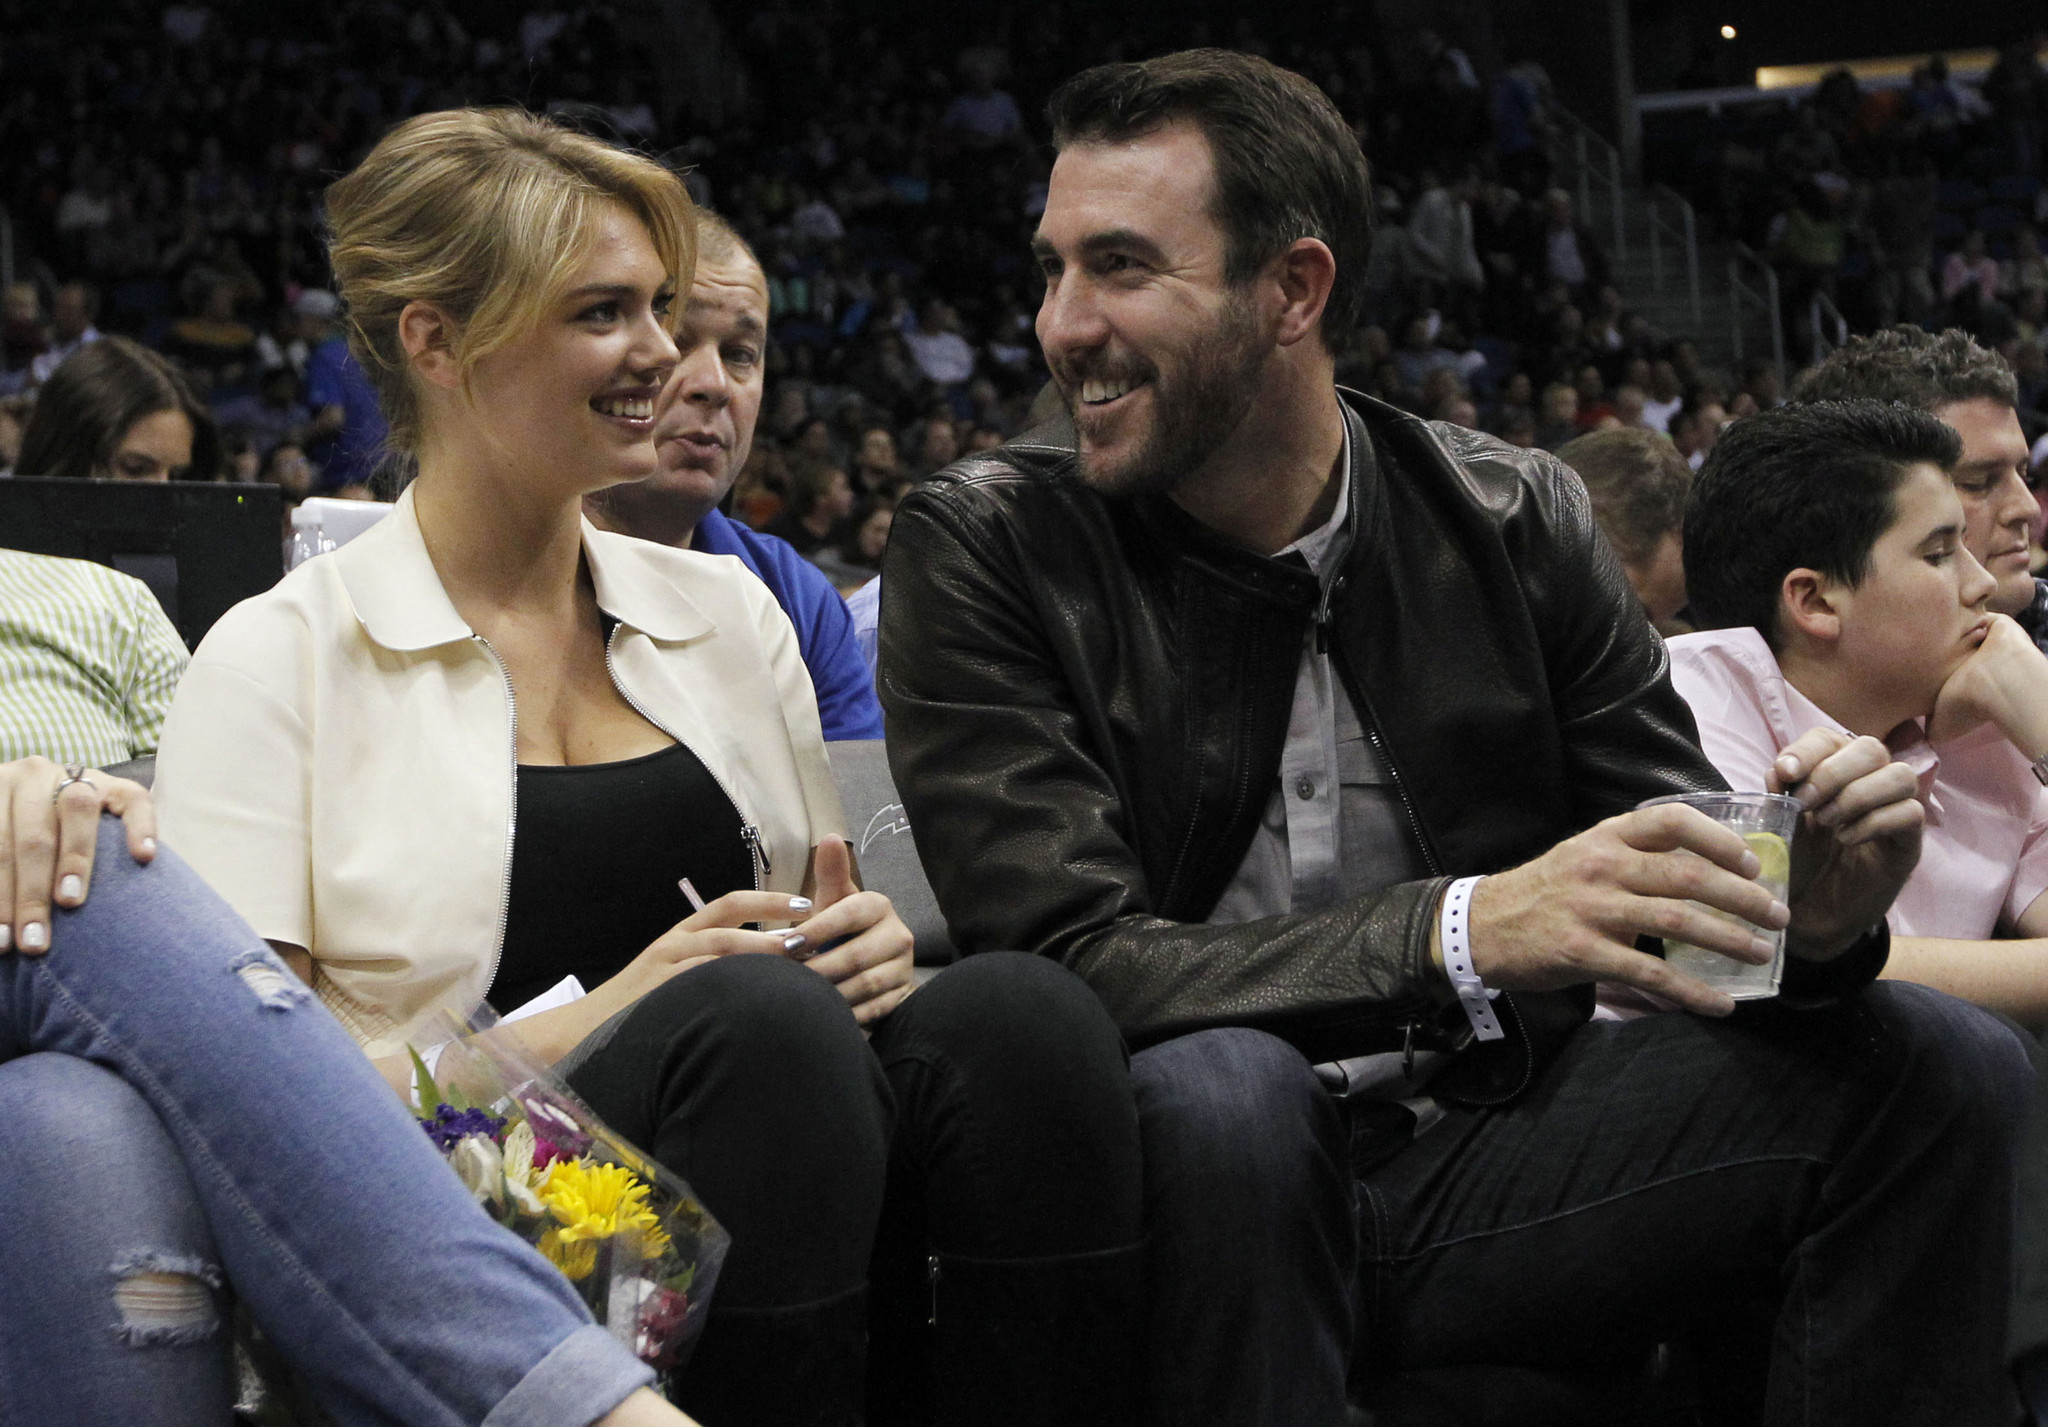 Kate Upton Is Engaged to Justin Verlander: Model Shows Stunning ...